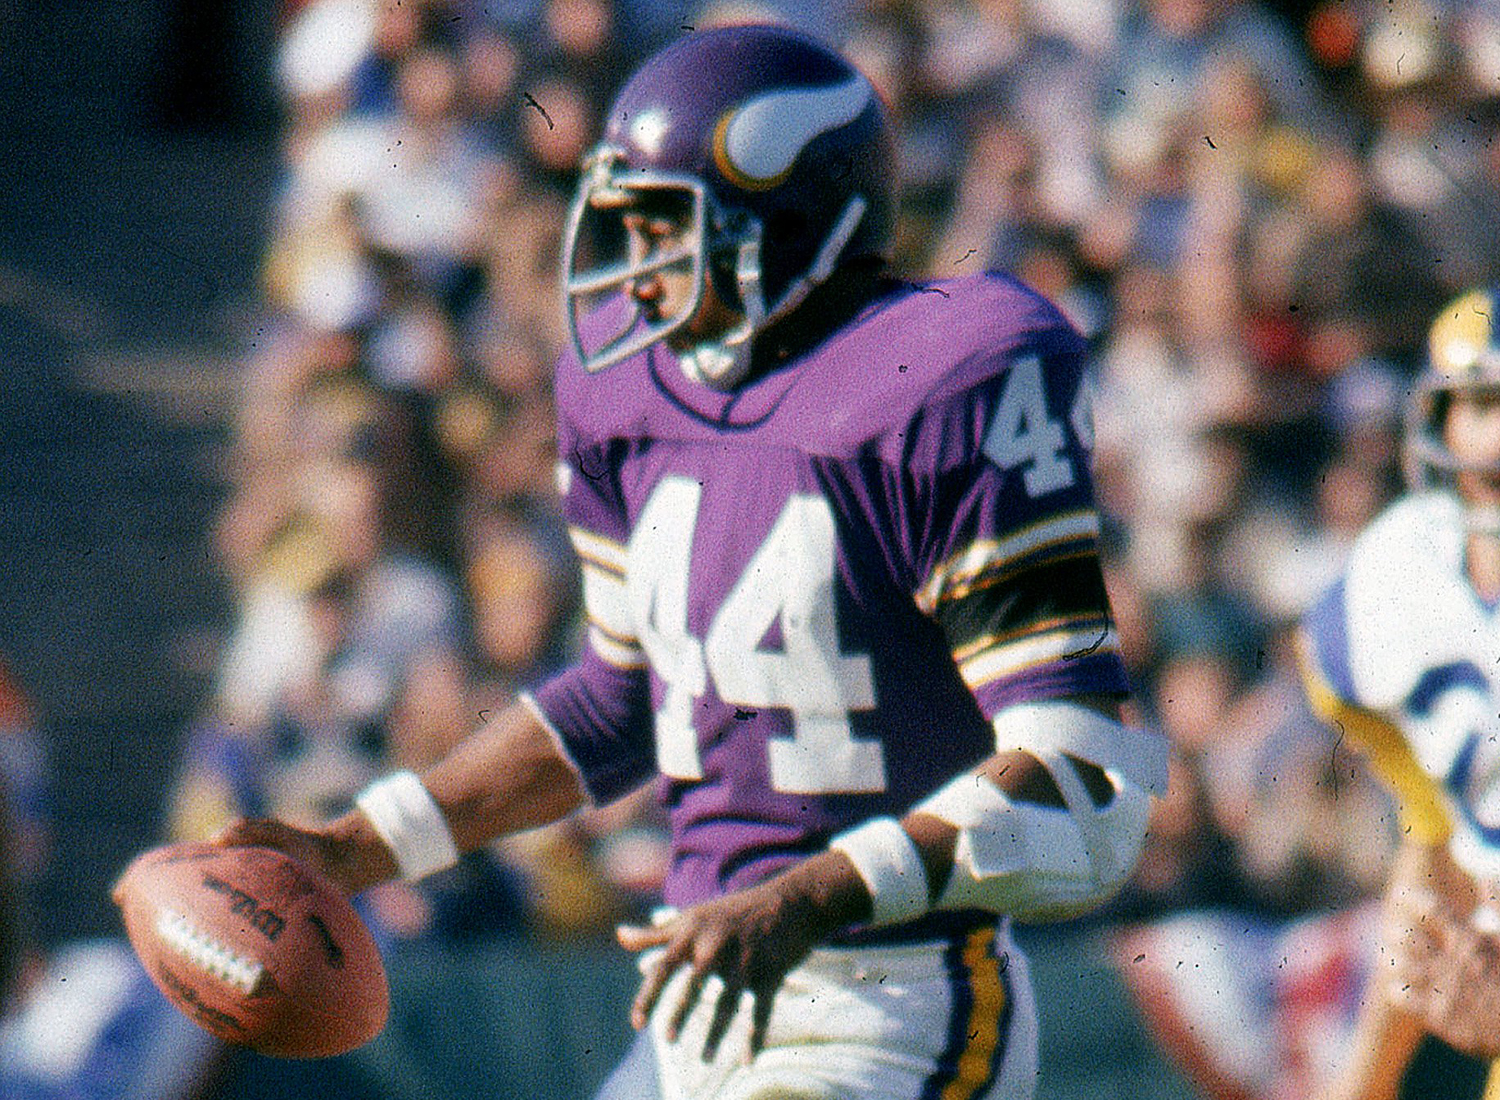 1973 NFL Draft, first round, Minnesota Vikings -- Foreman played seven seasons for the Vikings (1973-79) and one season for the New England Patriots (1980). He was a five-time Pro Bowl selection and a member of three Vikings teams that advanced to the Super Bowl. (National Football League)